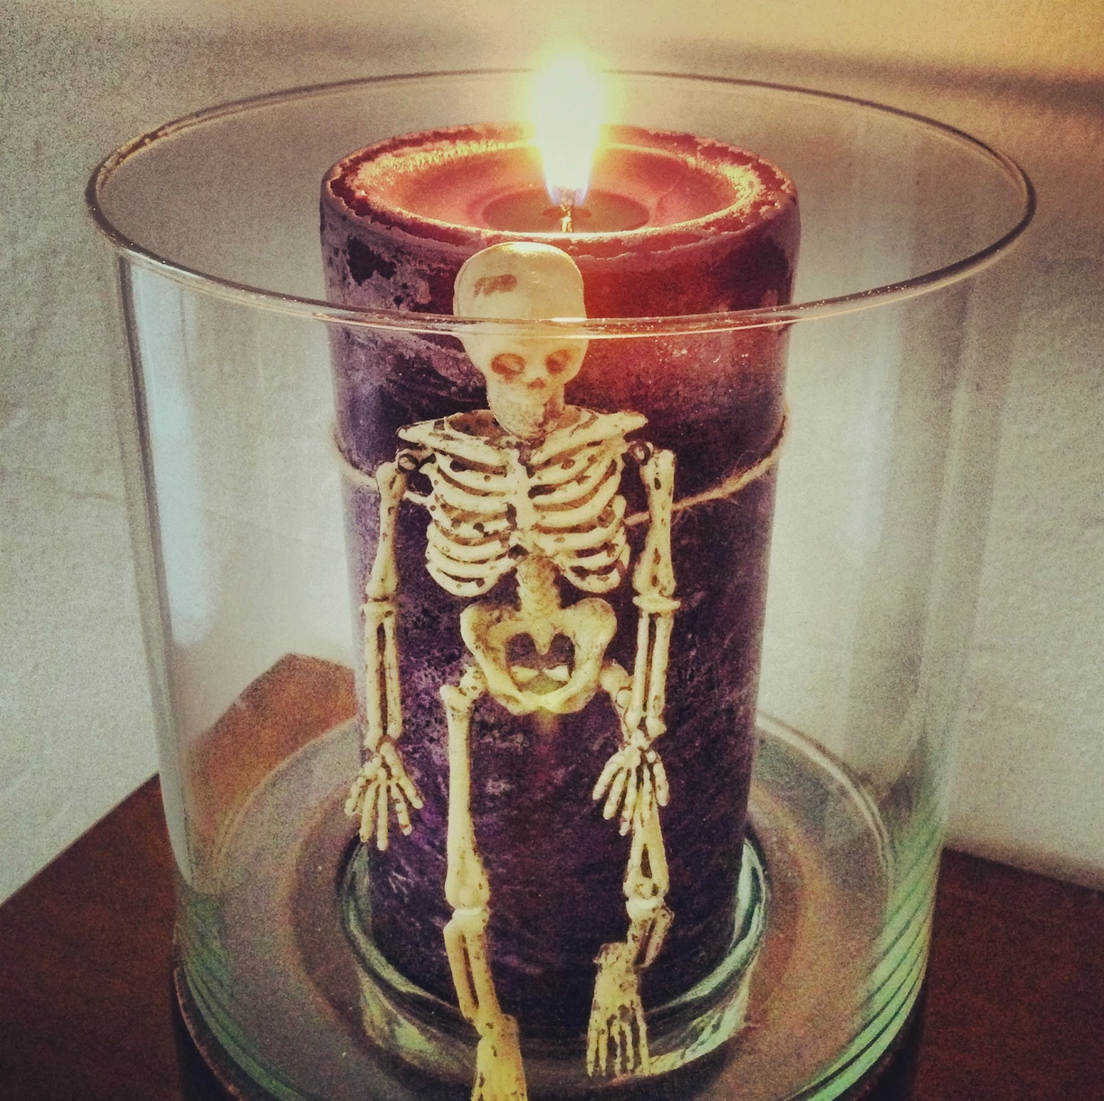 Do It Yourself Home Decorating: 16 Do It Yourself Halloween Home Decorating Ideas